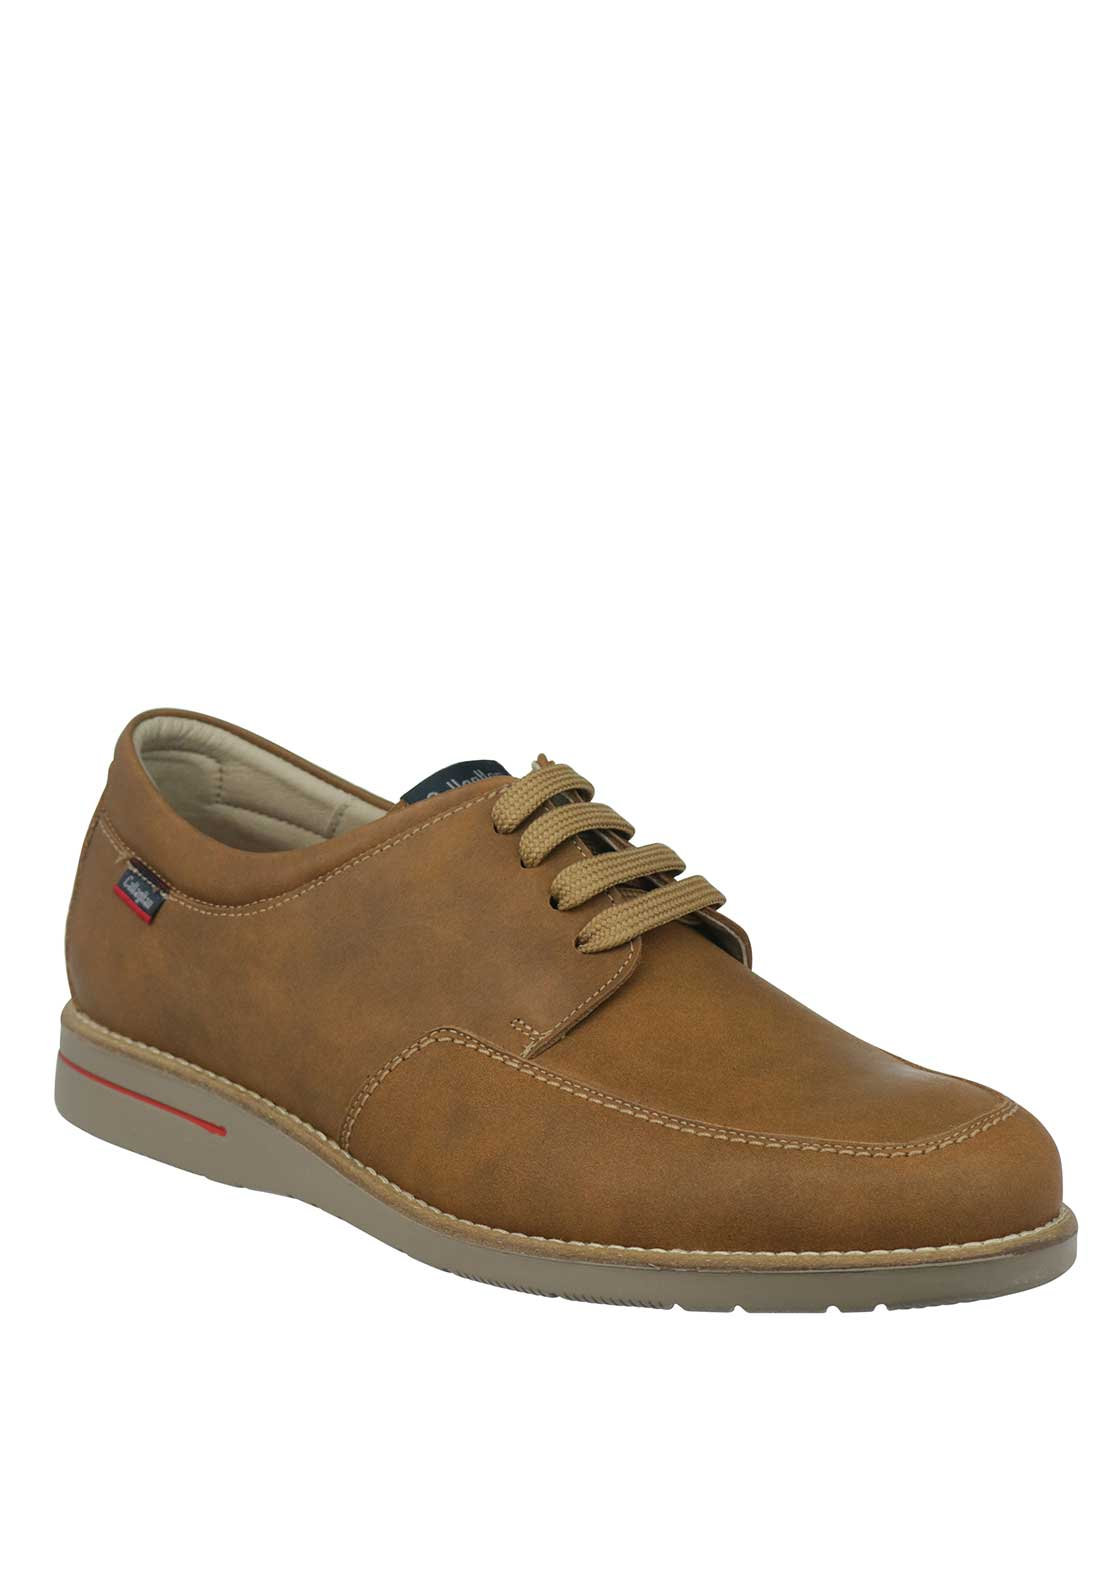 Callaghan Lace Up Leather Shoe, Tan